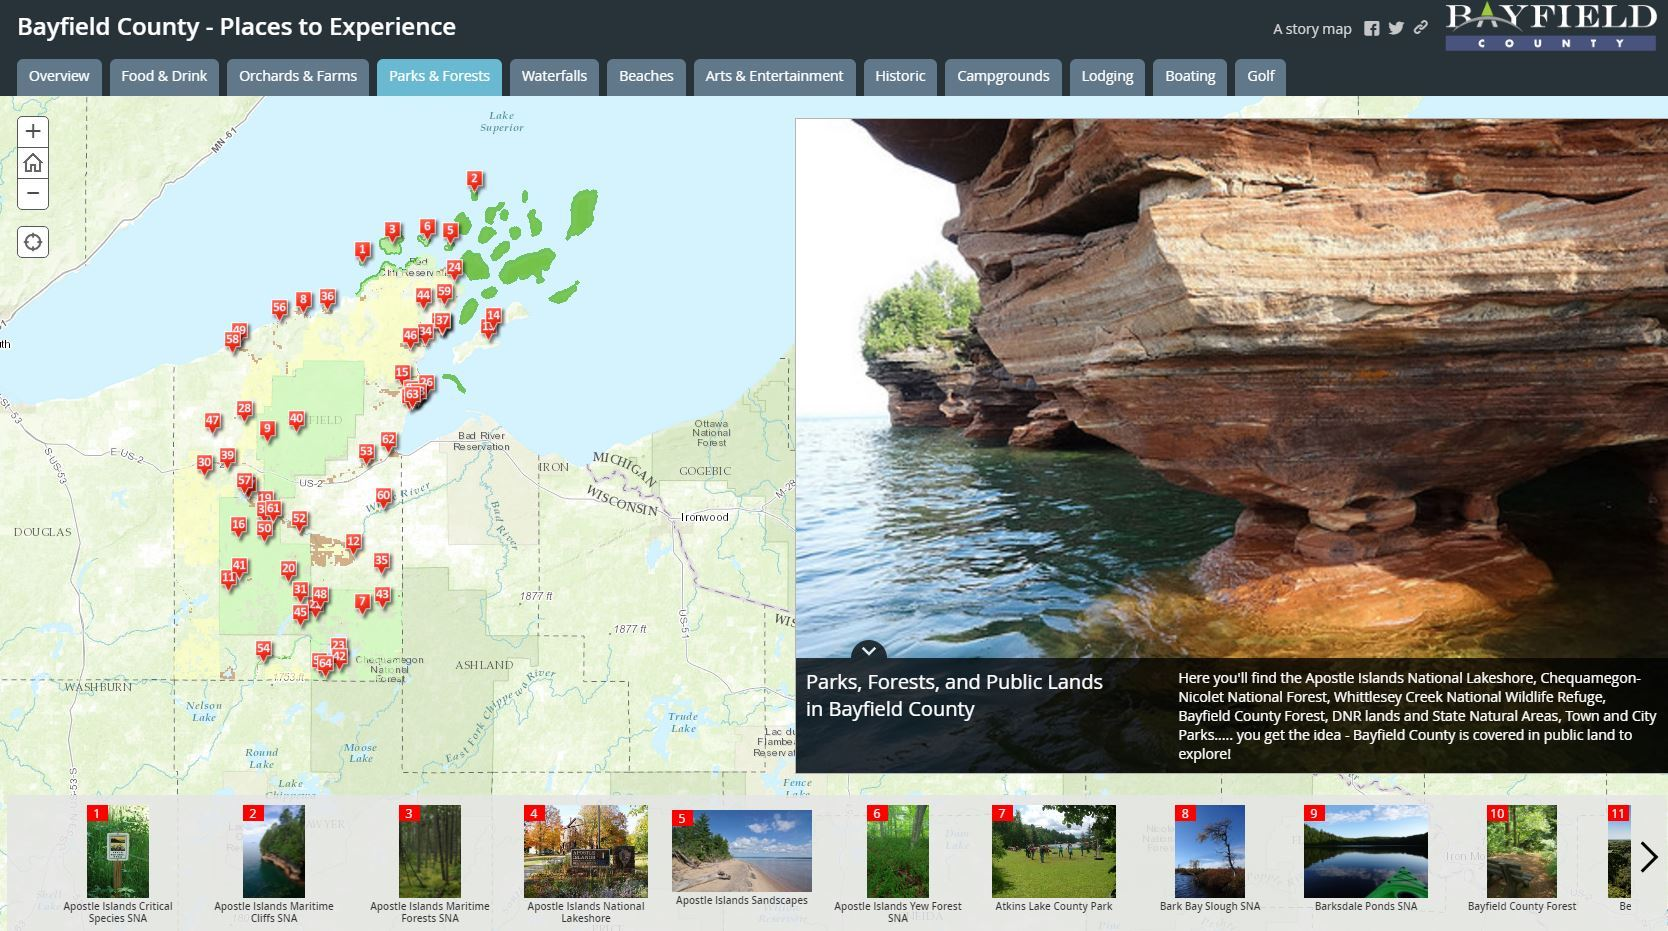 Bayfield County Story Map